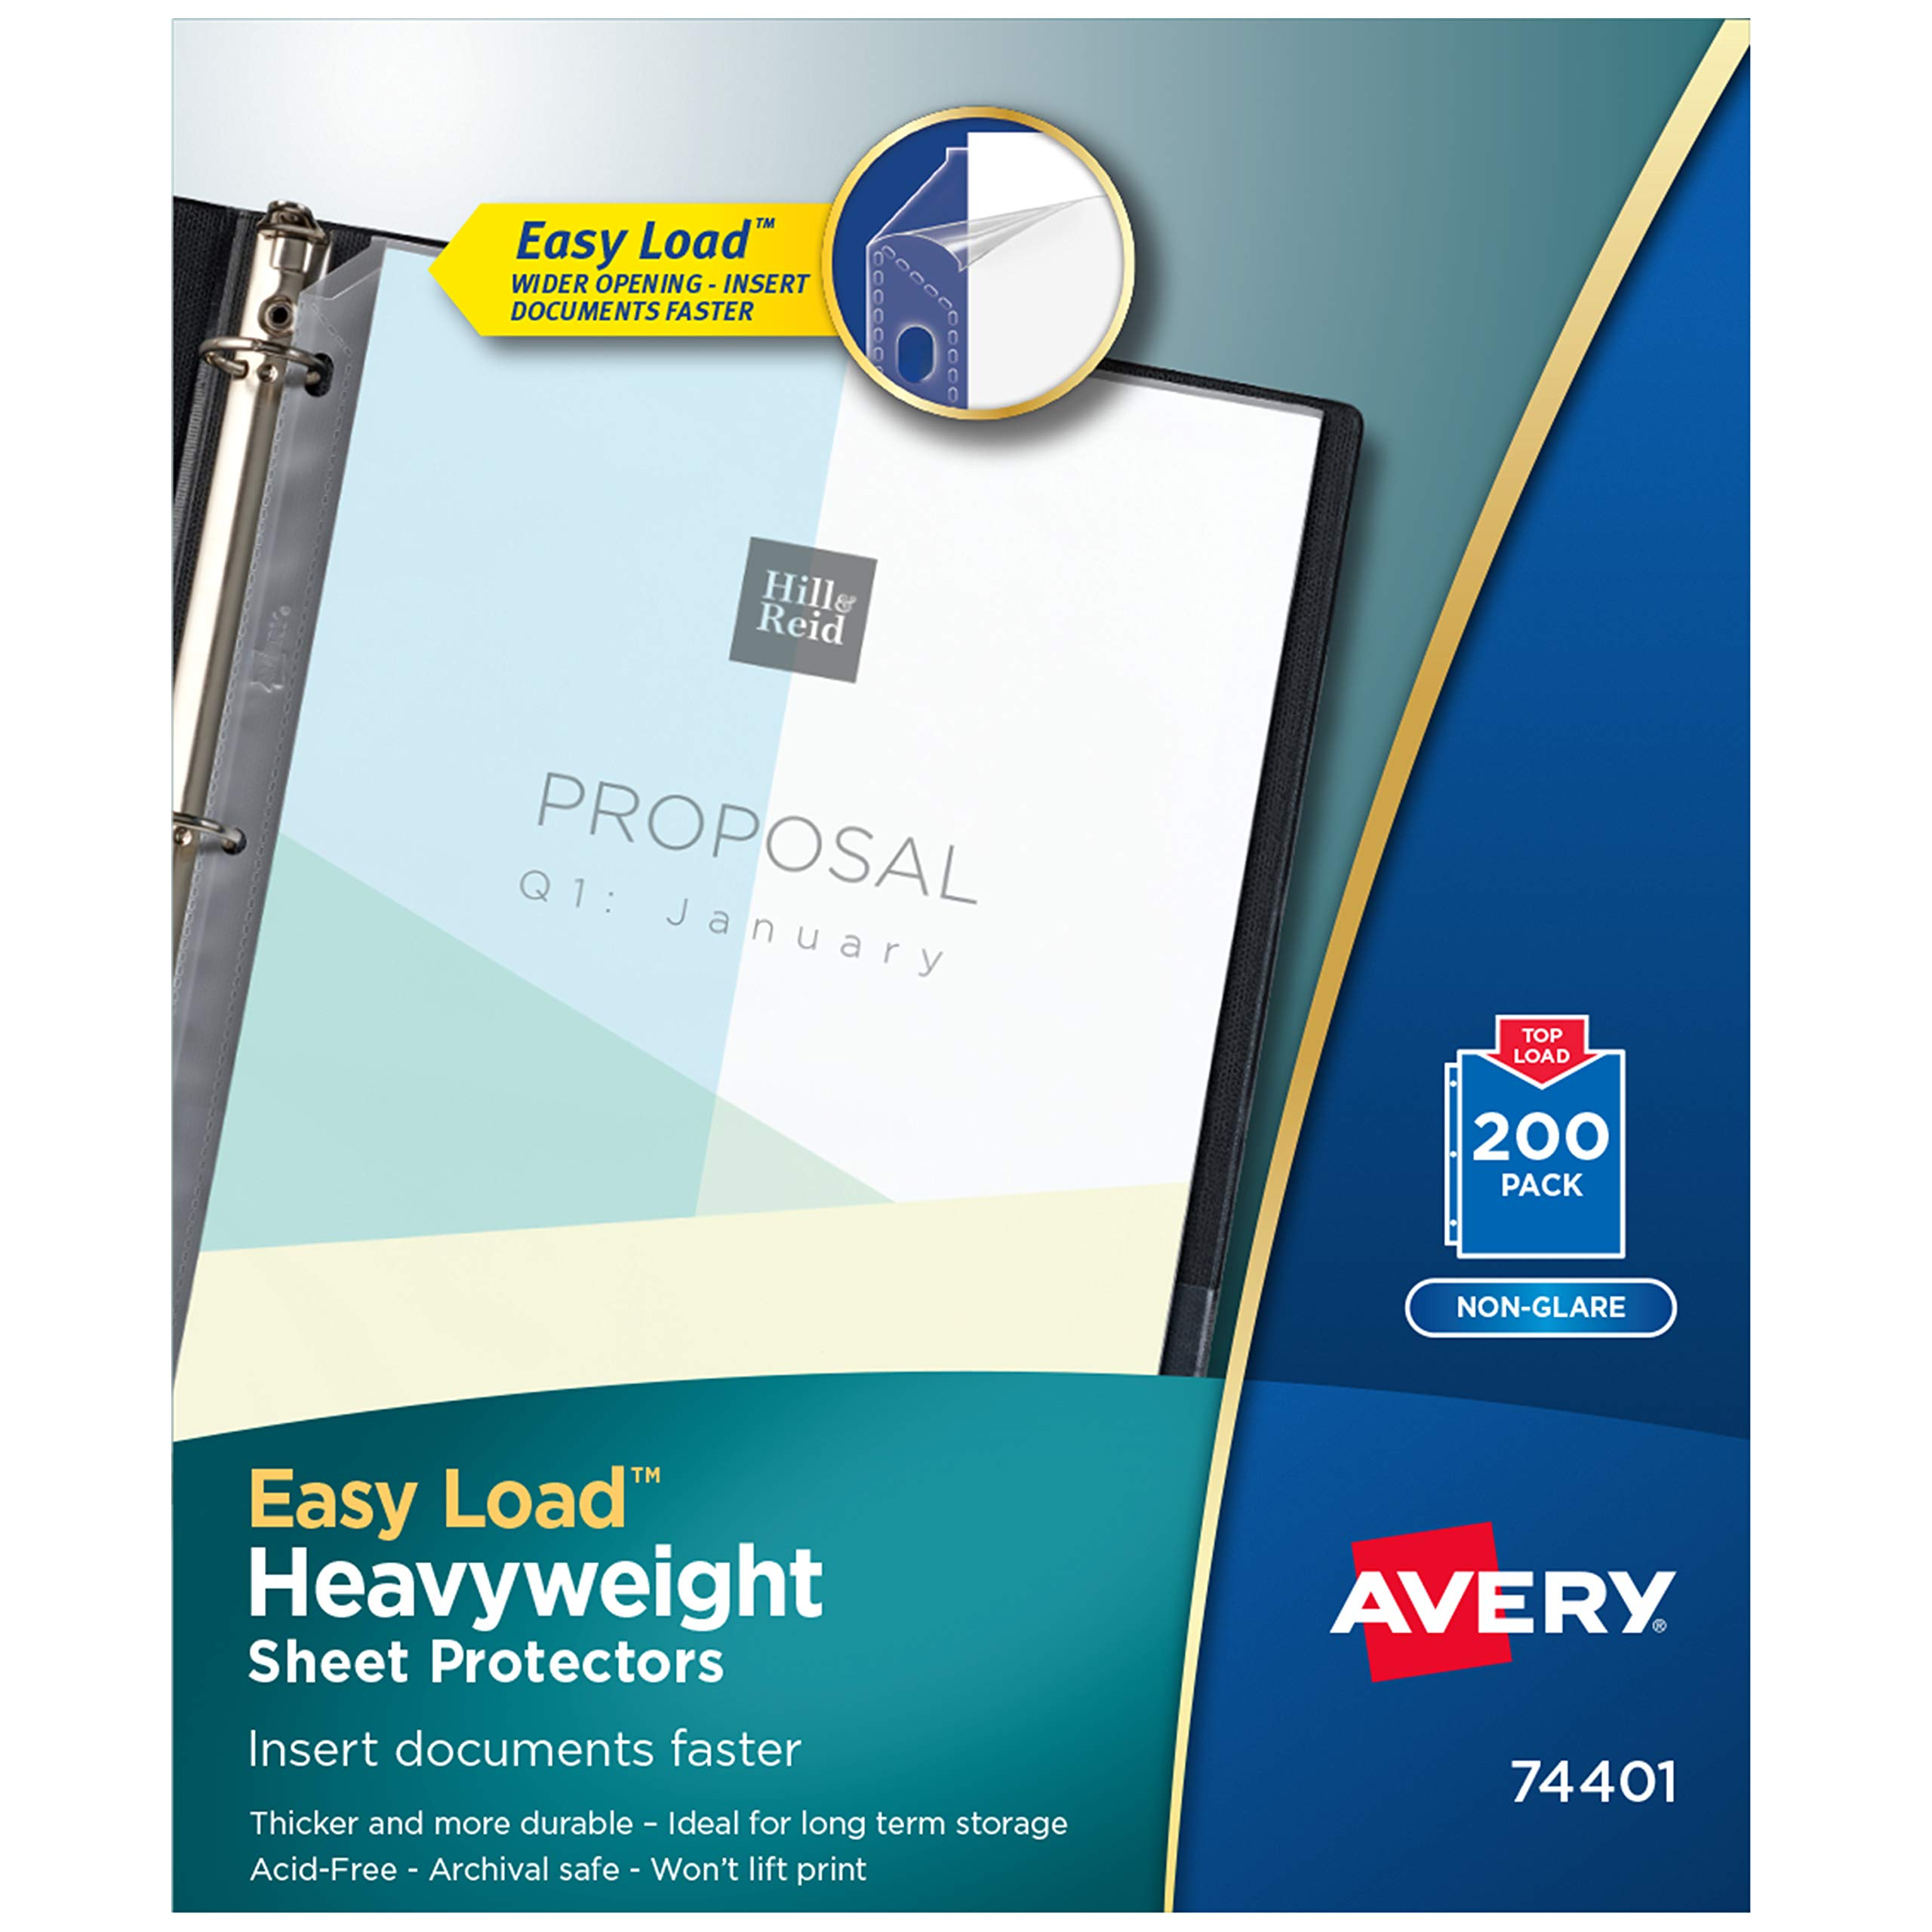 Avery Heavyweight Non-Glare Sheet Protectors, 8.5'' x 11'', Acid-Free, Archival Safe, Easy Load, 200ct (74401) by AVERY